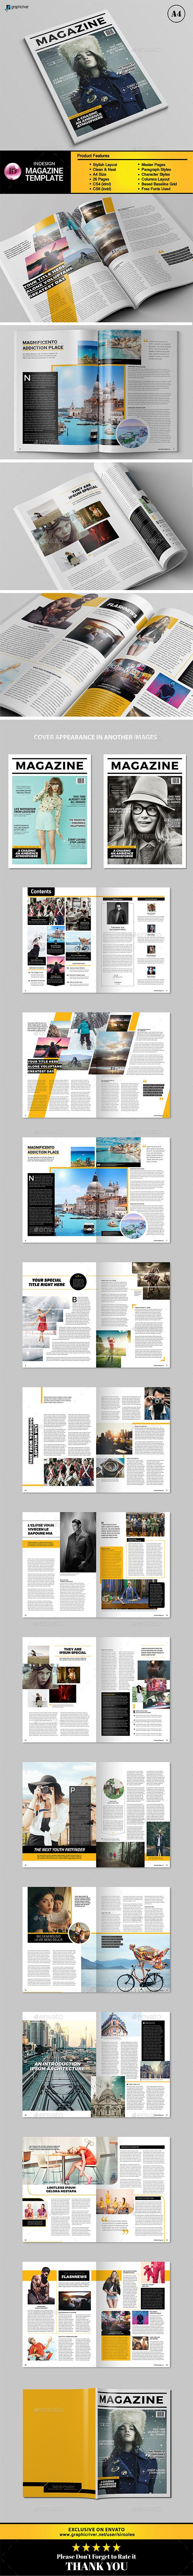 Magazine Template InDesign INDD. Download here: http://graphicriver.net/item/indesign-magazine-vol3/16198409?ref=ksioks